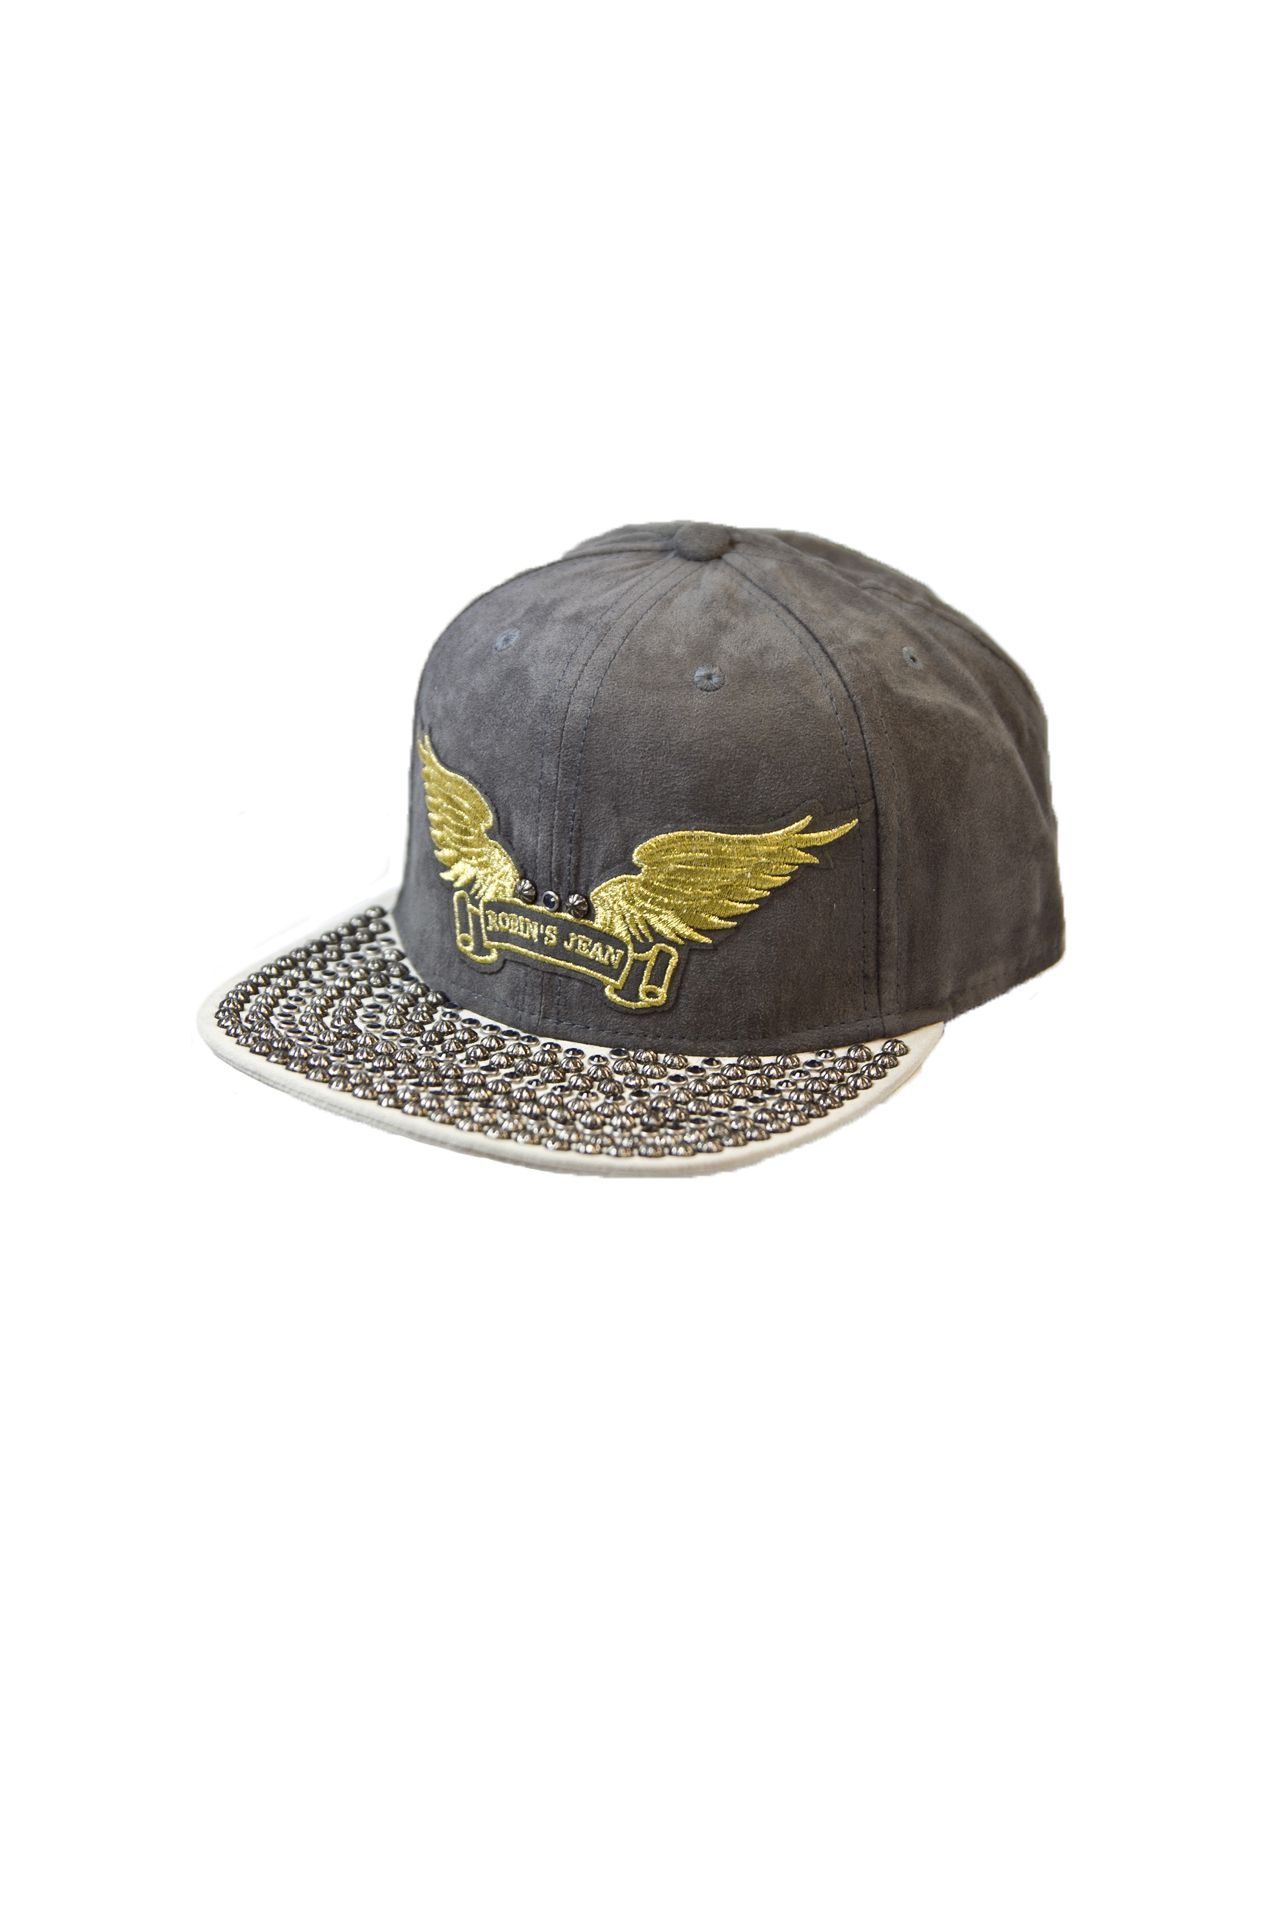 CHARCOAL SUEDE CAP 2 TONES WITH CRYSTALS AND STUDS